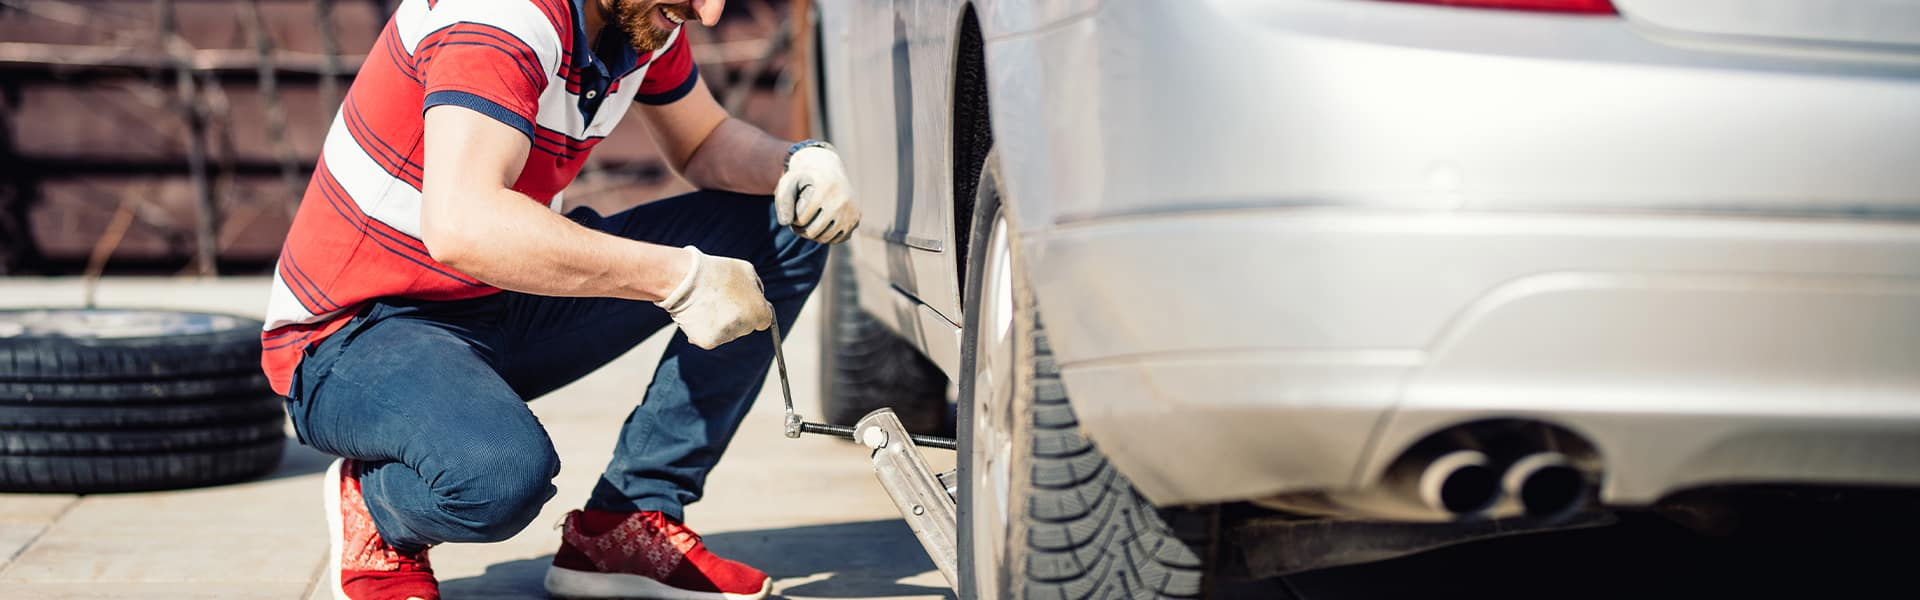 How to change a tire step-by-step guide at Halterman's Toyota in East Stroudsburg | Man using Car Jack on Car in Order to Lift Up and Change Tire on Vehicle